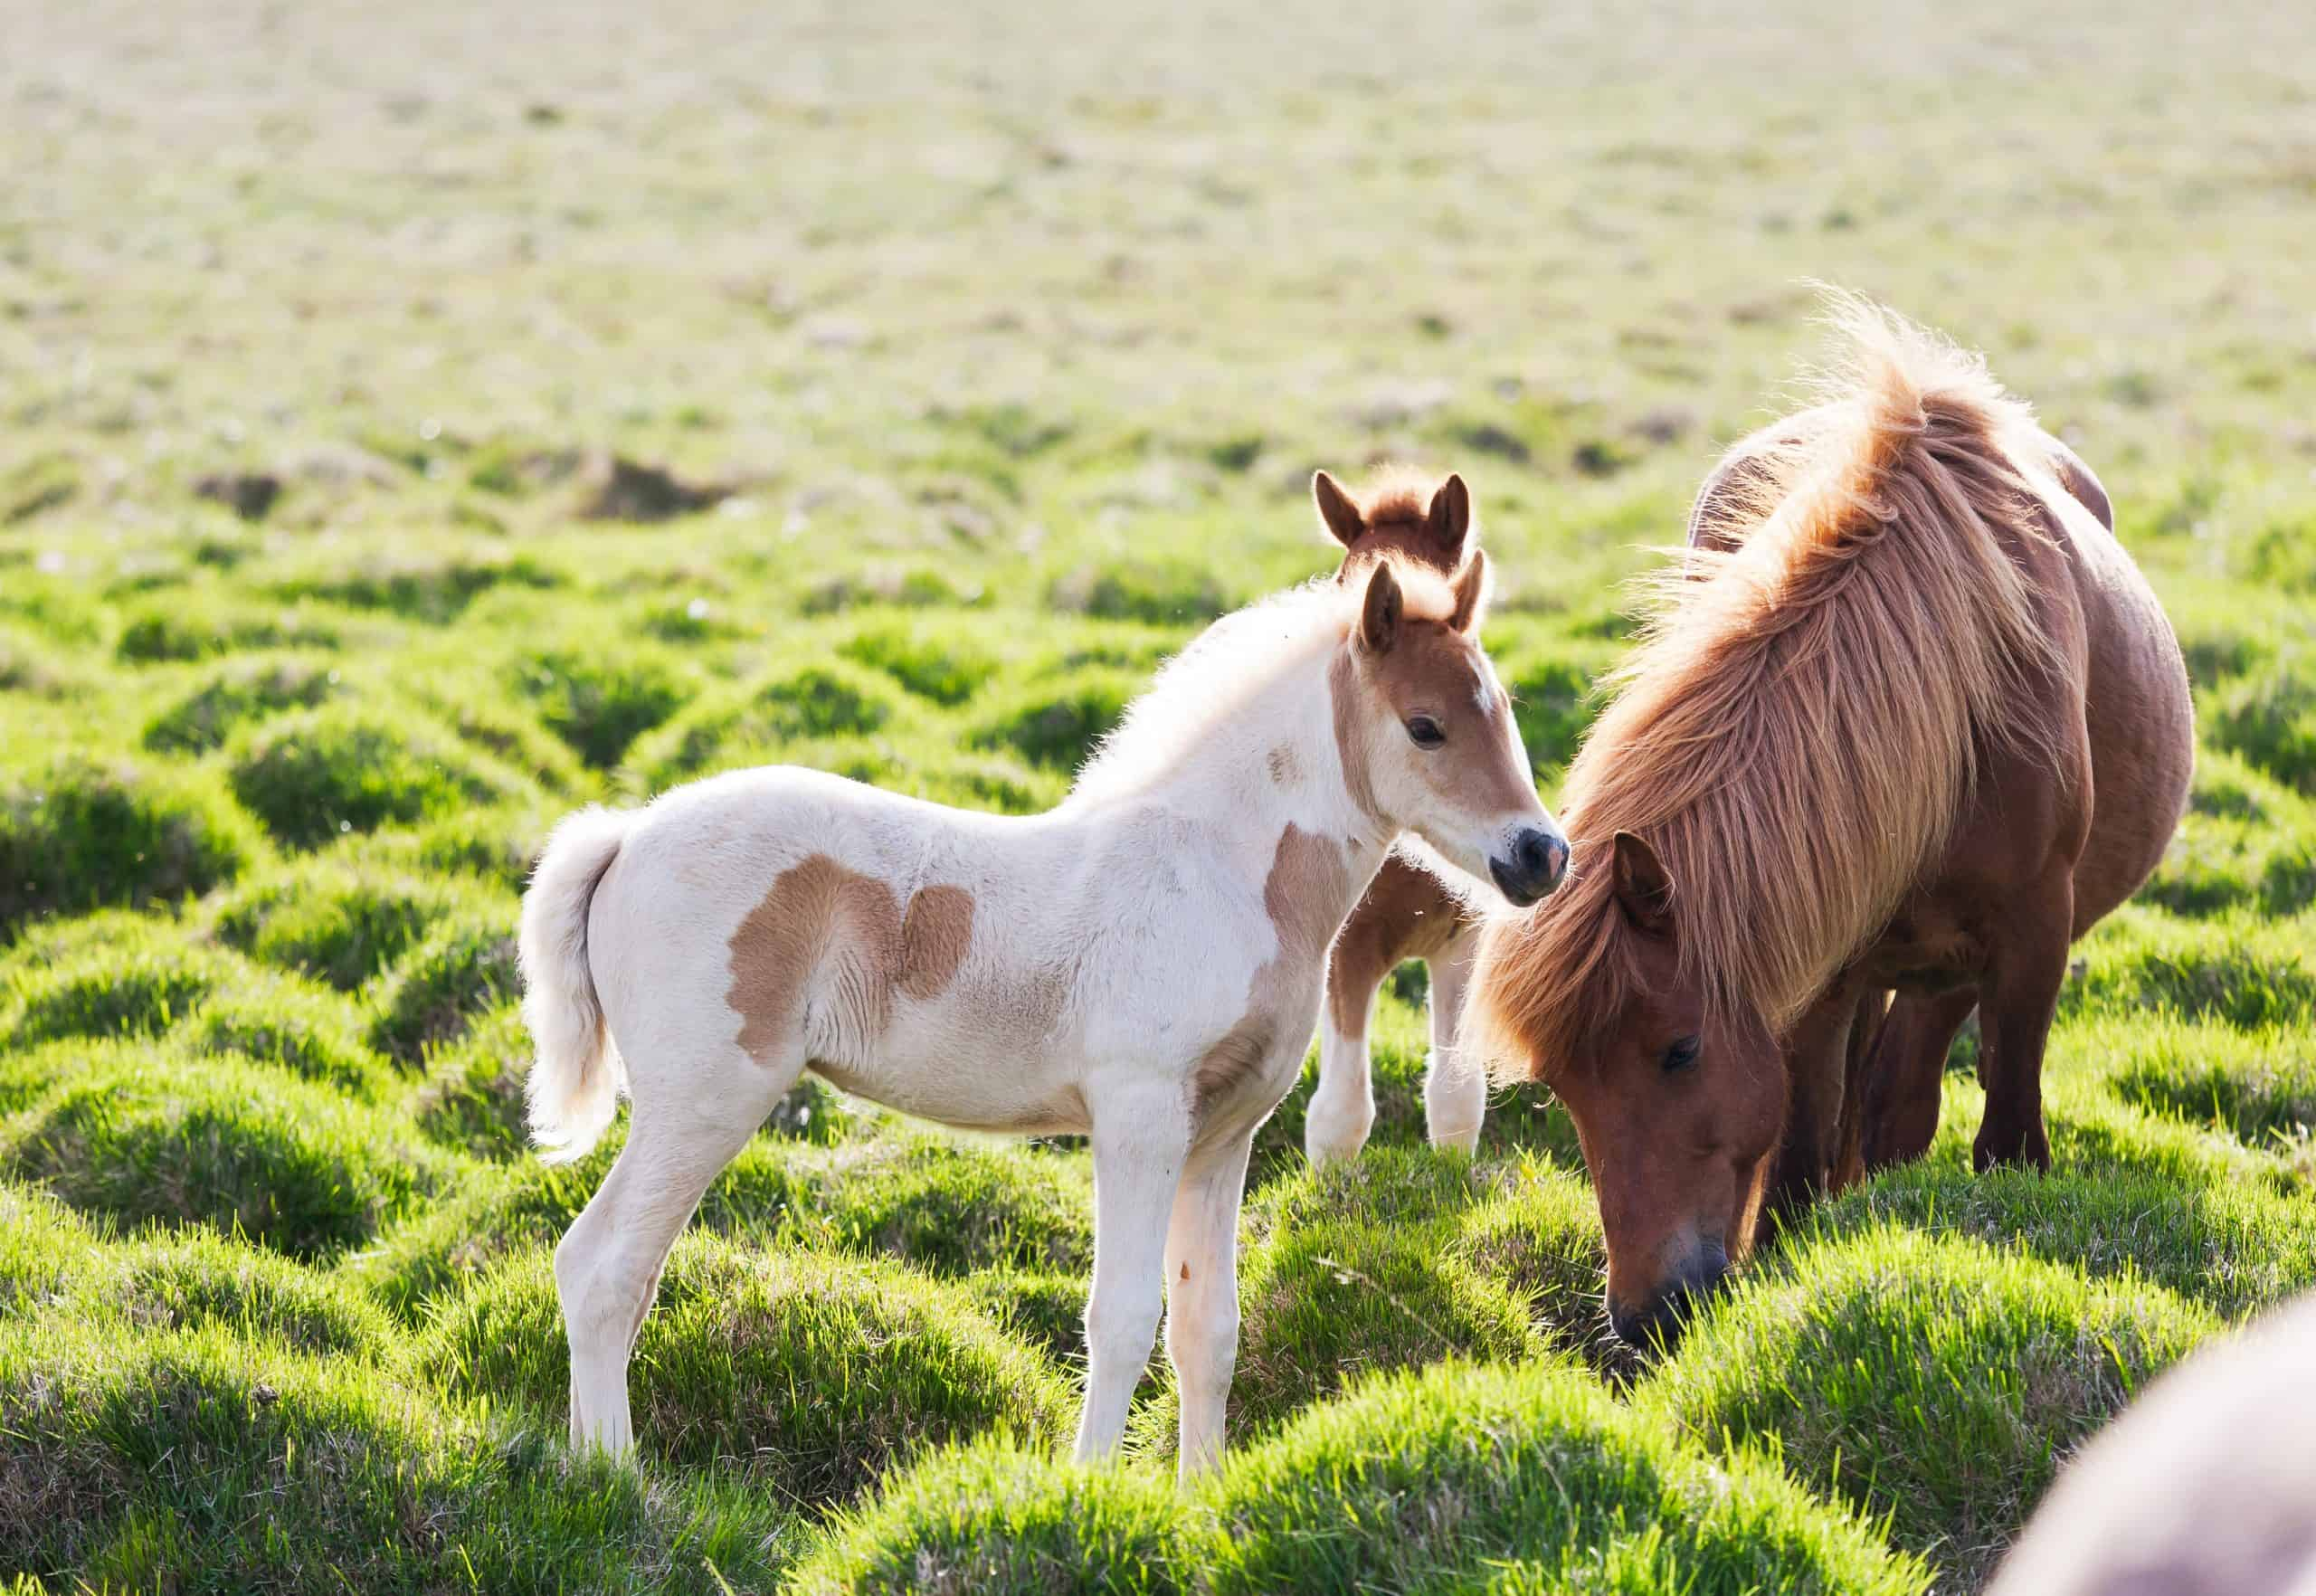 horse with her colt. Iceland, Europe.